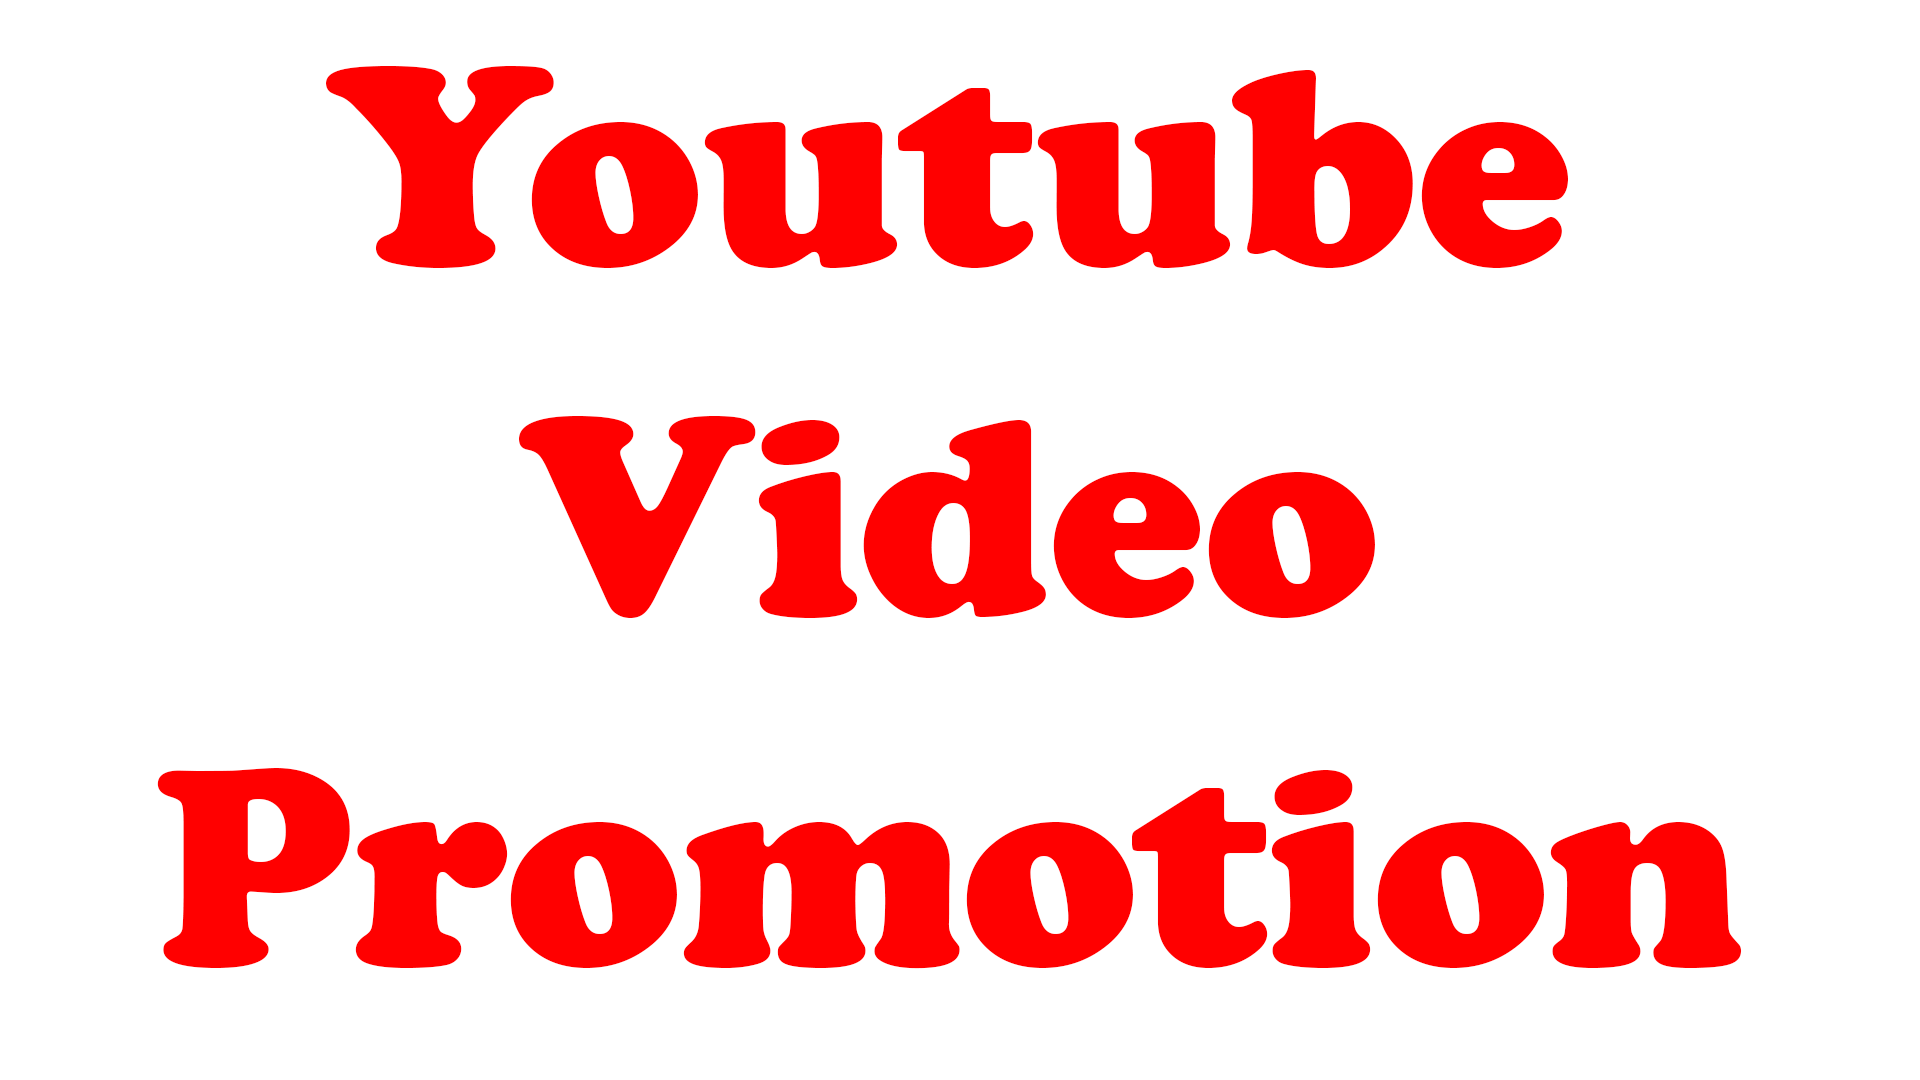 YouTube Video Promotion fastest delivery